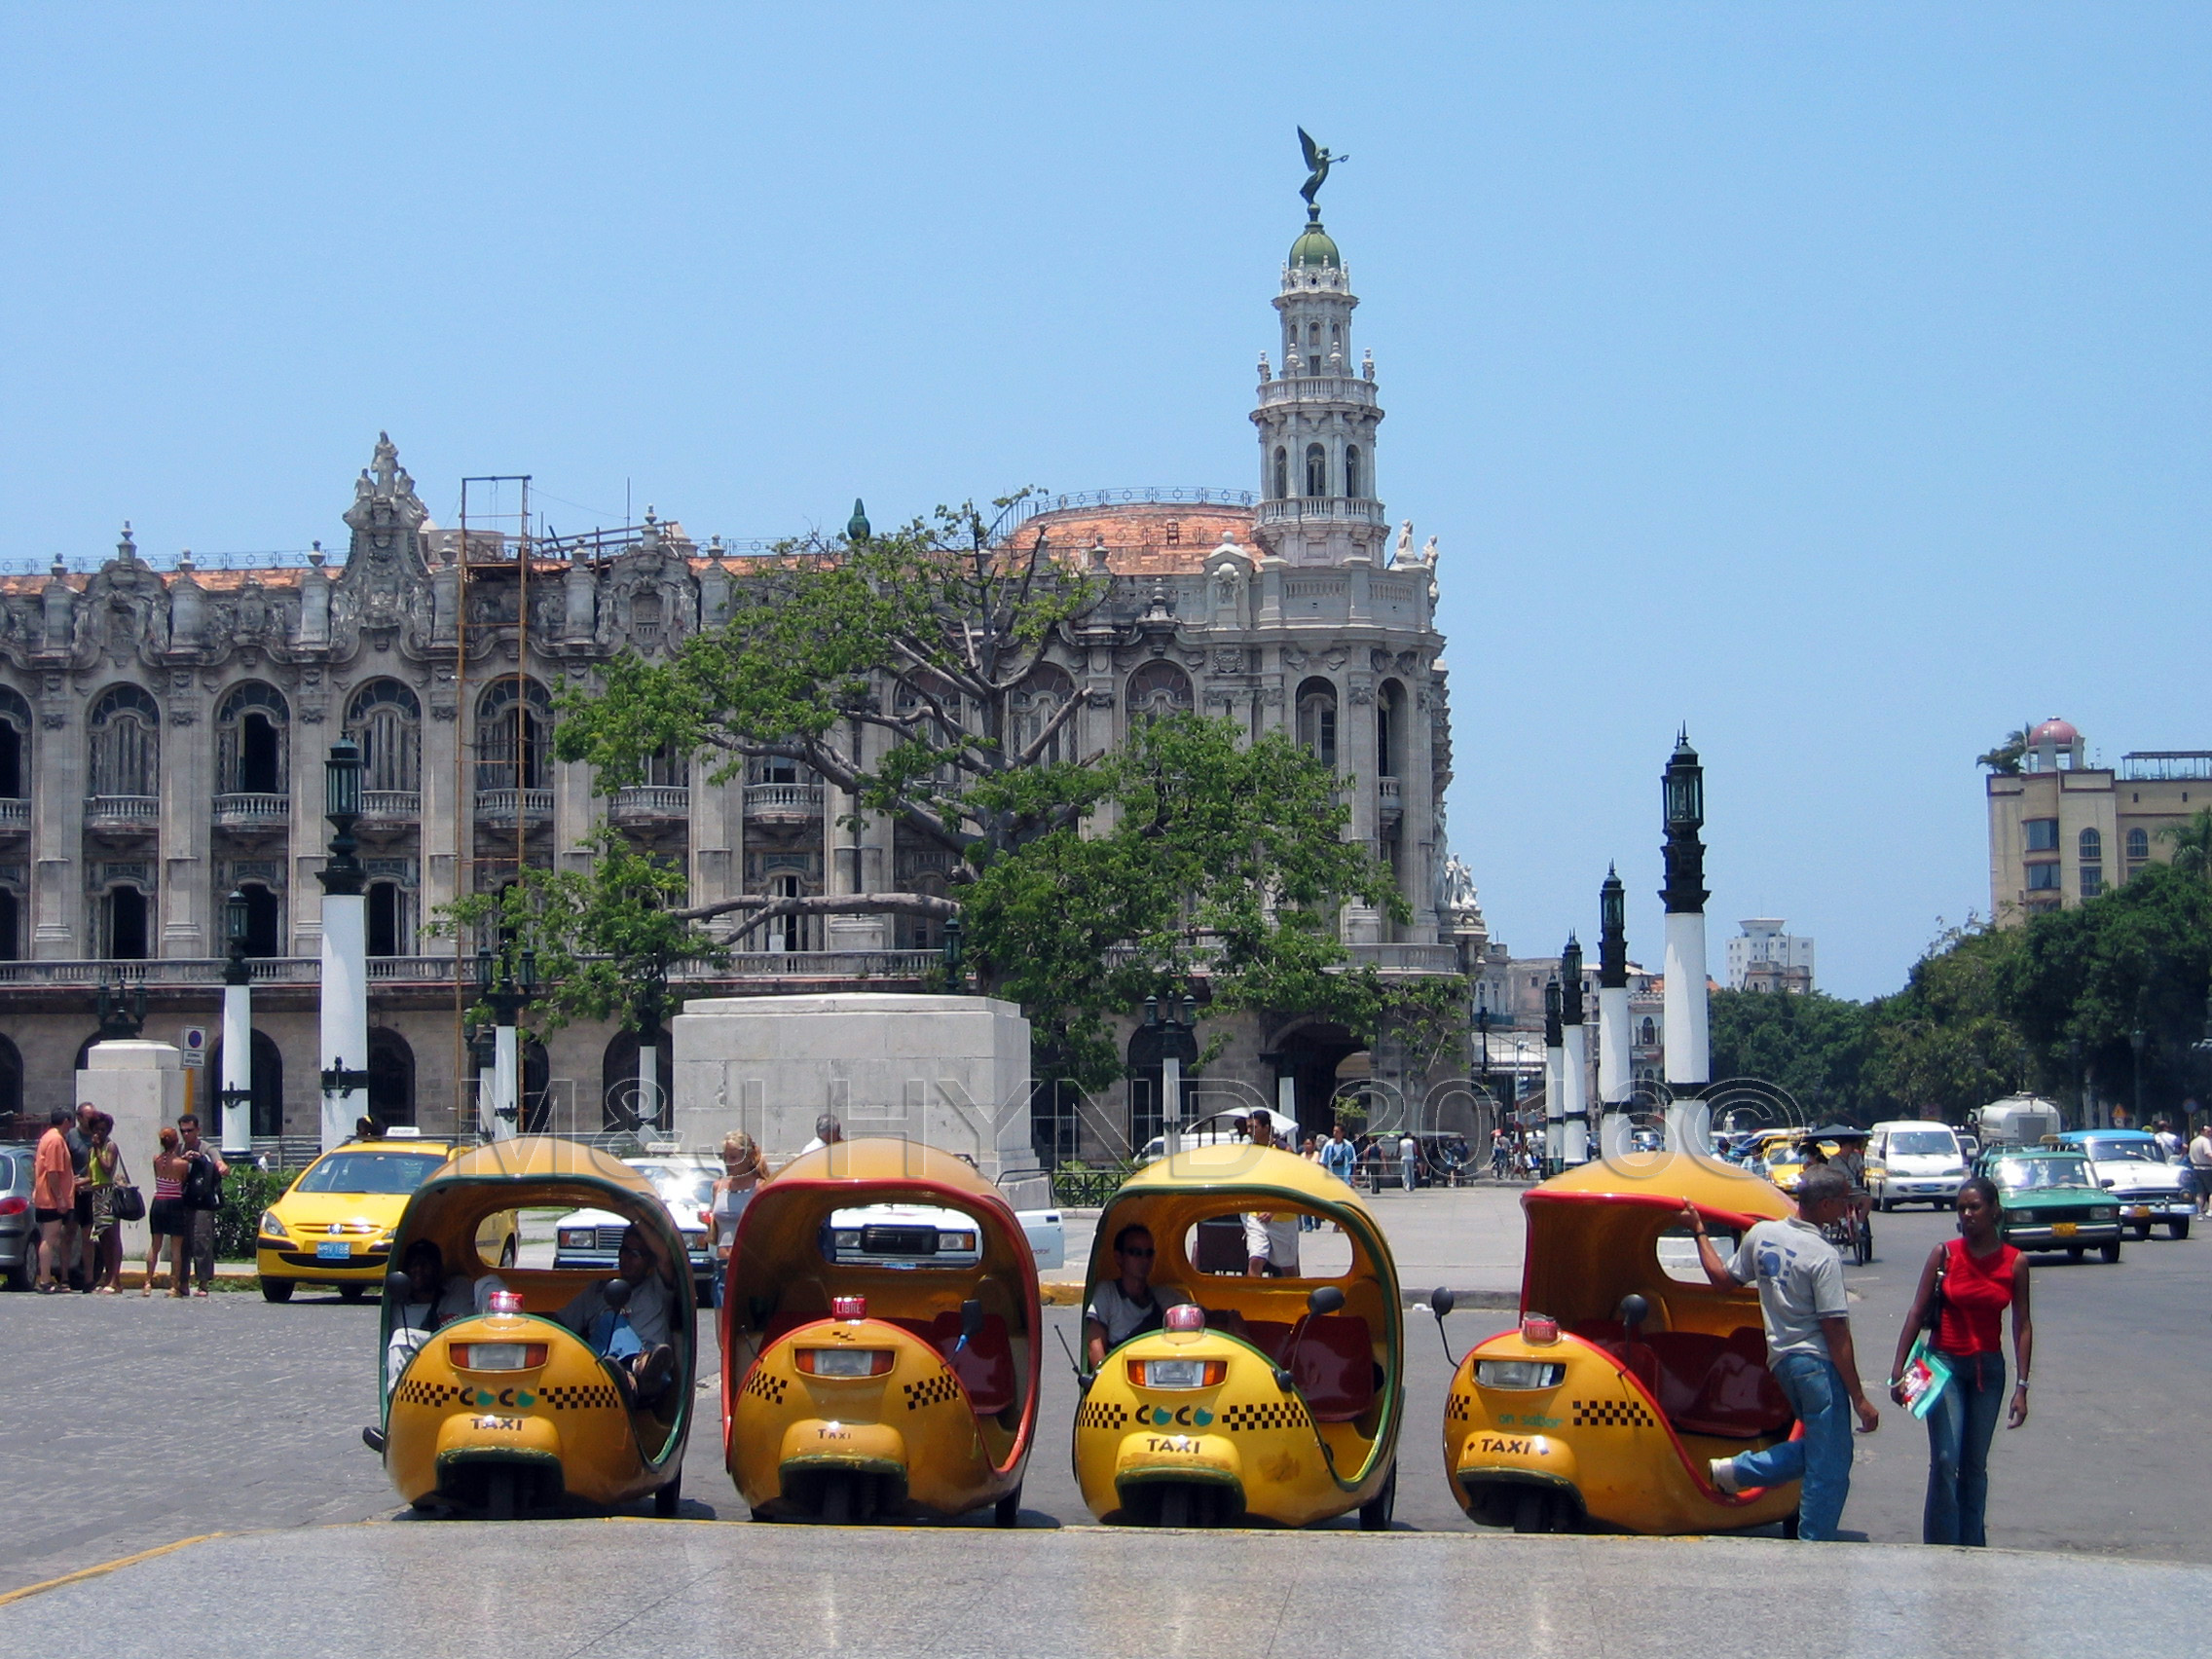 coco-taxis, egg-shaped, three-wheeler in the shape of a yellow coconut, downtown Havana, cuba worldwide holiday ideas